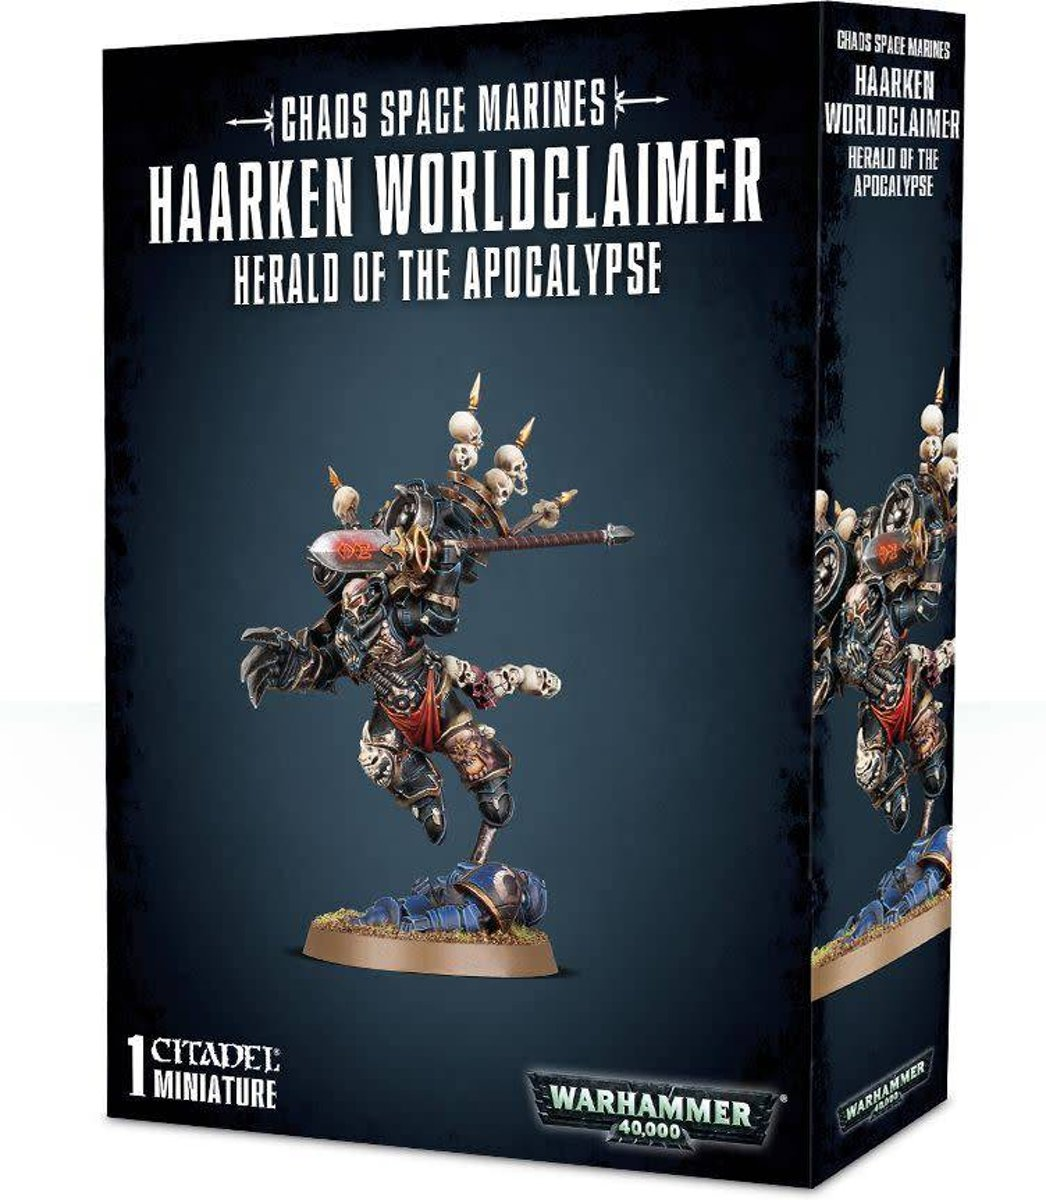 Warhammer 40,000 Chaos Heretic Astartes Chaos Space Marines: Haarken Worldclaimer